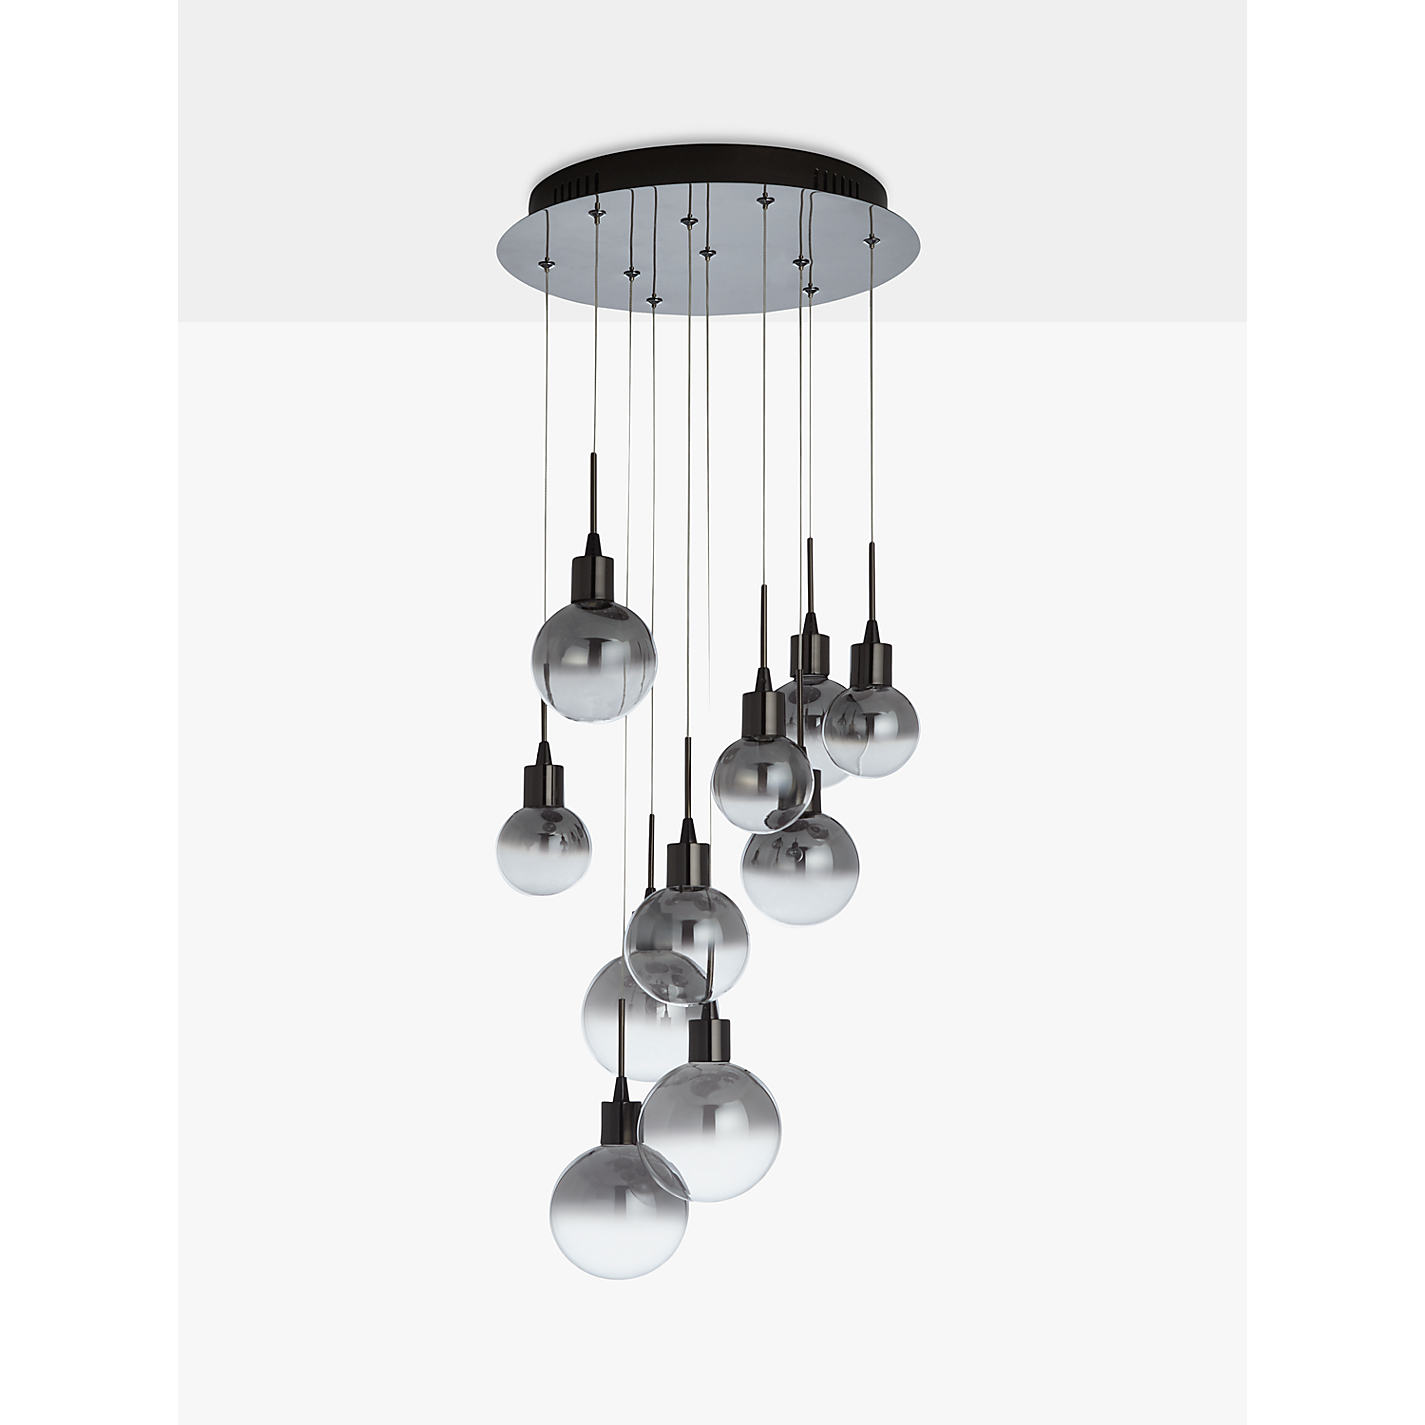 Buy john lewis dano led ombre glass ceiling light 10 light black buy john lewis dano led ombre glass ceiling light 10 light blackchrome mozeypictures Choice Image